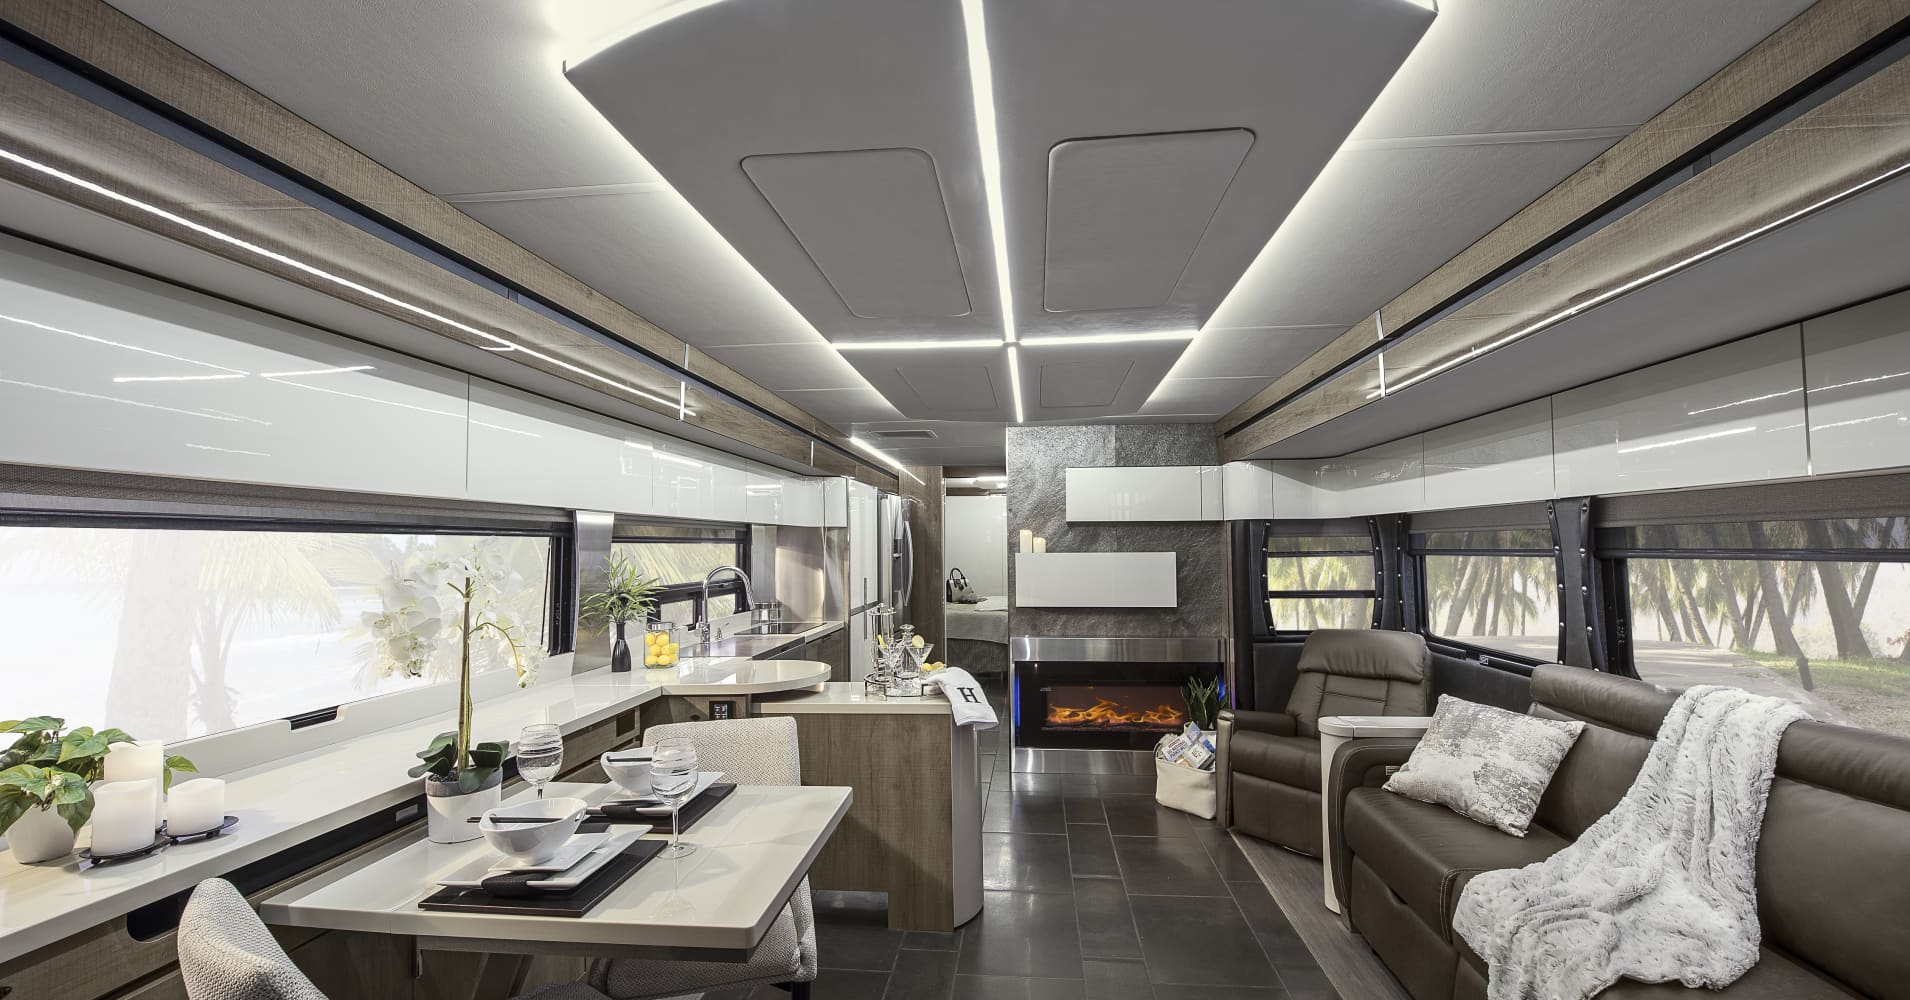 Winnebagou0027s New Horizon Is Bringing Sleek, Uncluttered Design Cues To The High  End Of The